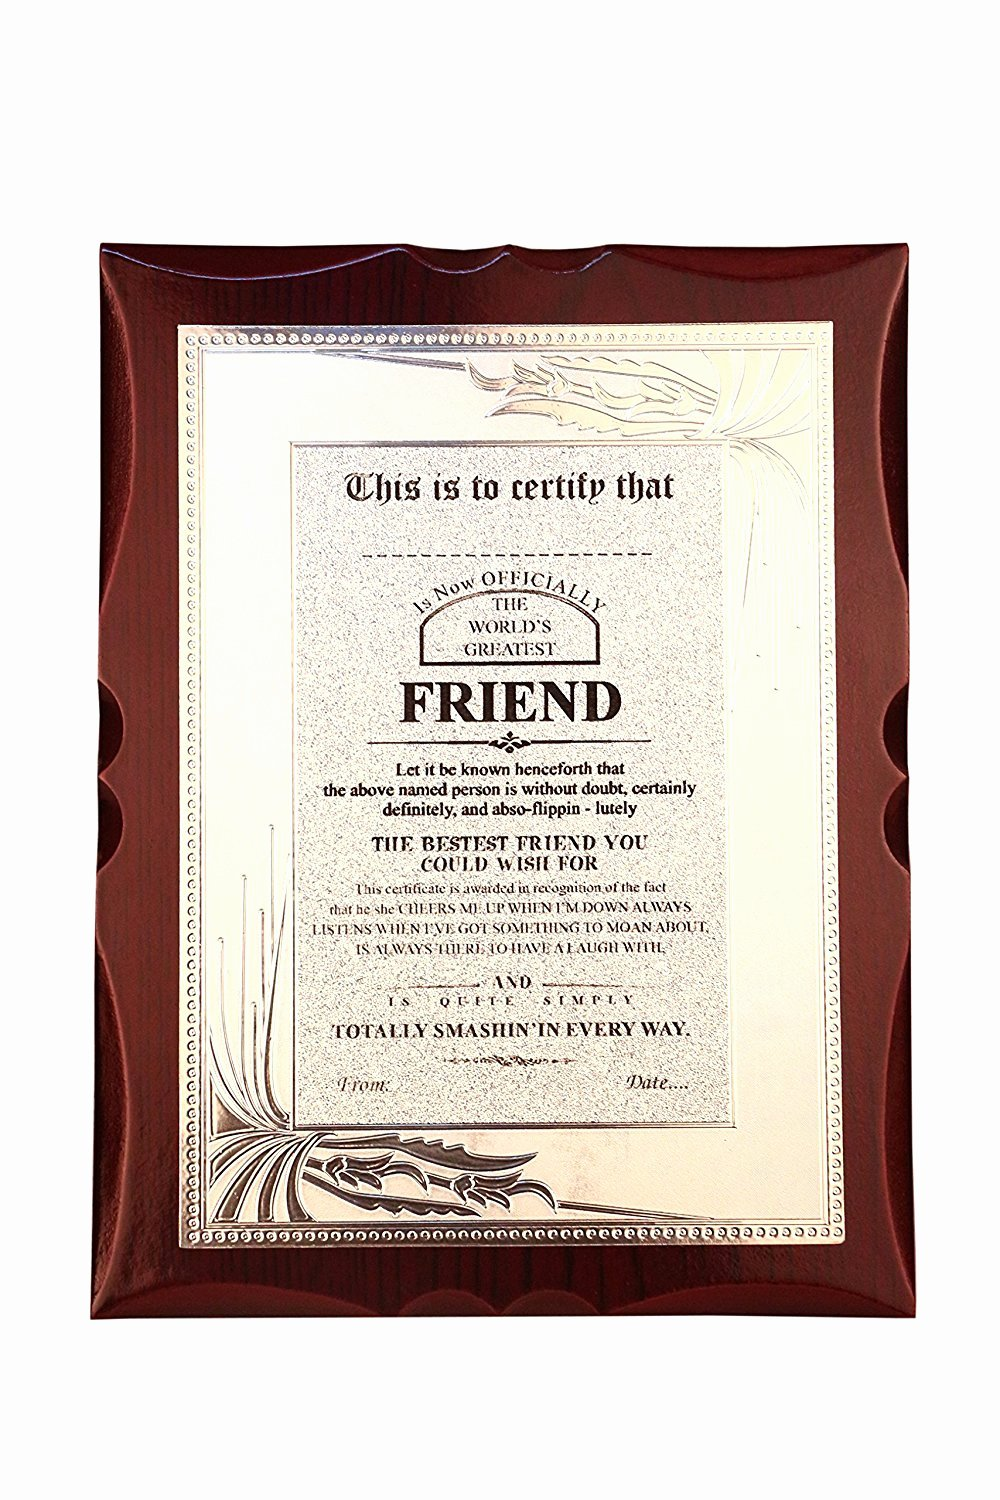 Best Friend Award Certificate Awesome Gift for Friend World S Best Friend Premium Certificate